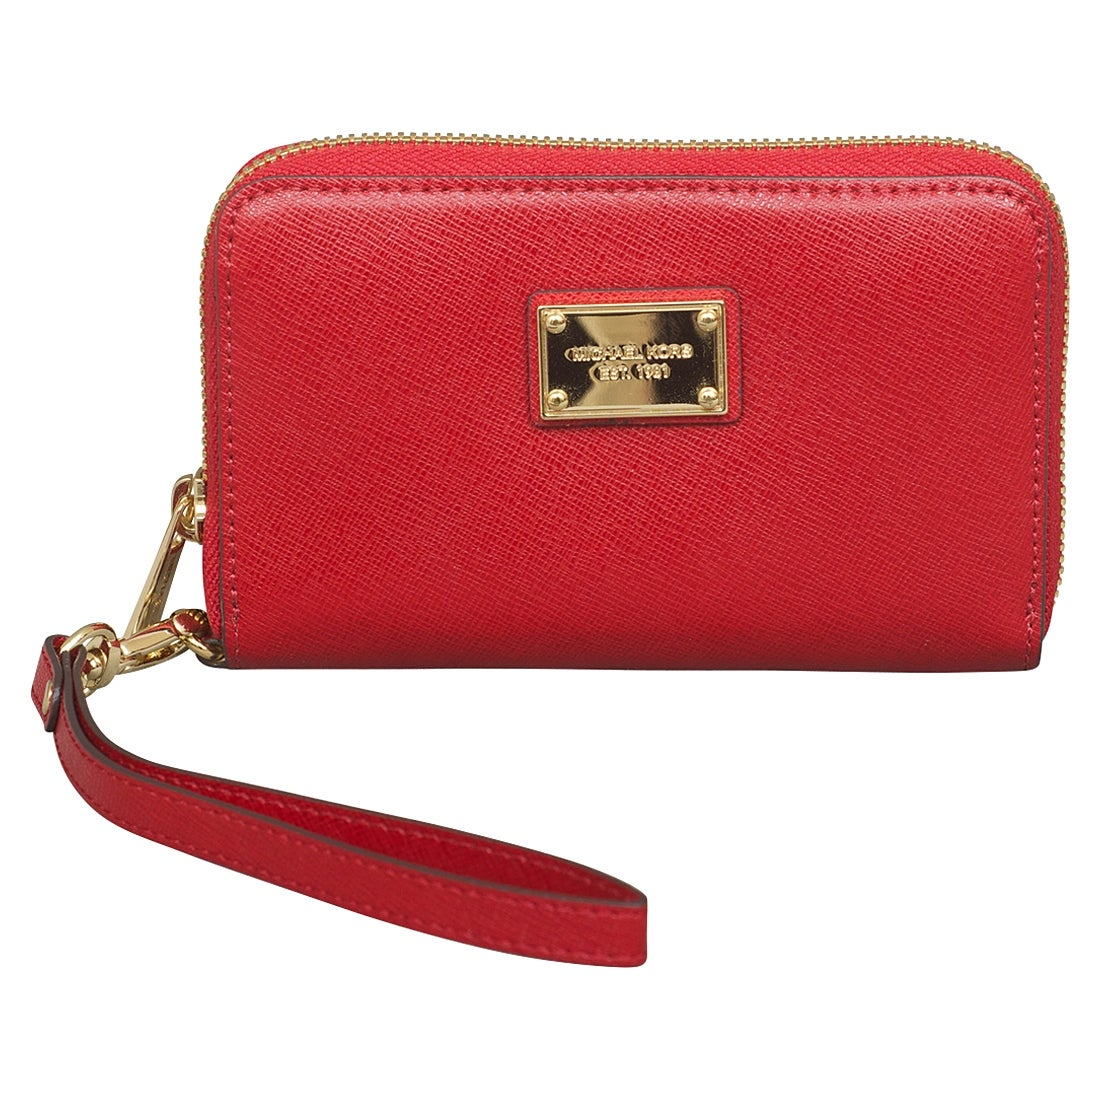 59fb3f8be7e4 Shop Michael Kors Red Leather Essential Zip Wallet Clutch for Apple iPhone  - Free Shipping Today - Overstock - 22703623